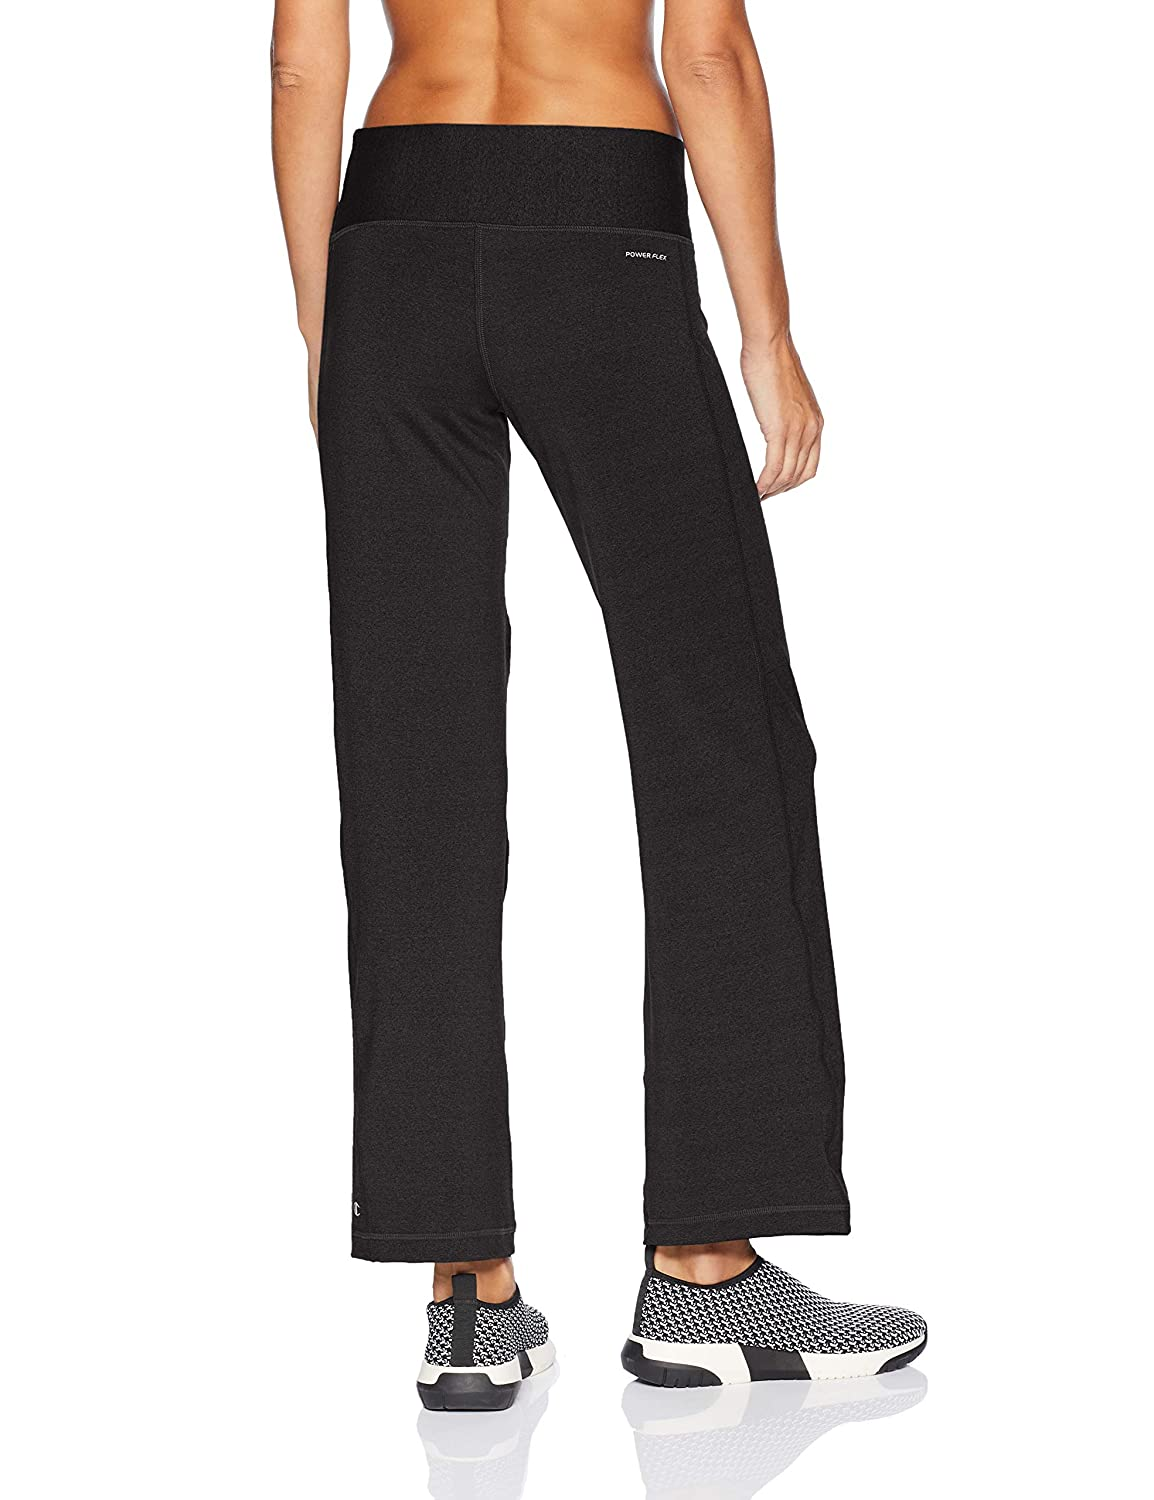 60f3144d0acd6f Amazon.com: Champion Women's Absolute Semi-fit Pant with SmoothTec :  Clothing